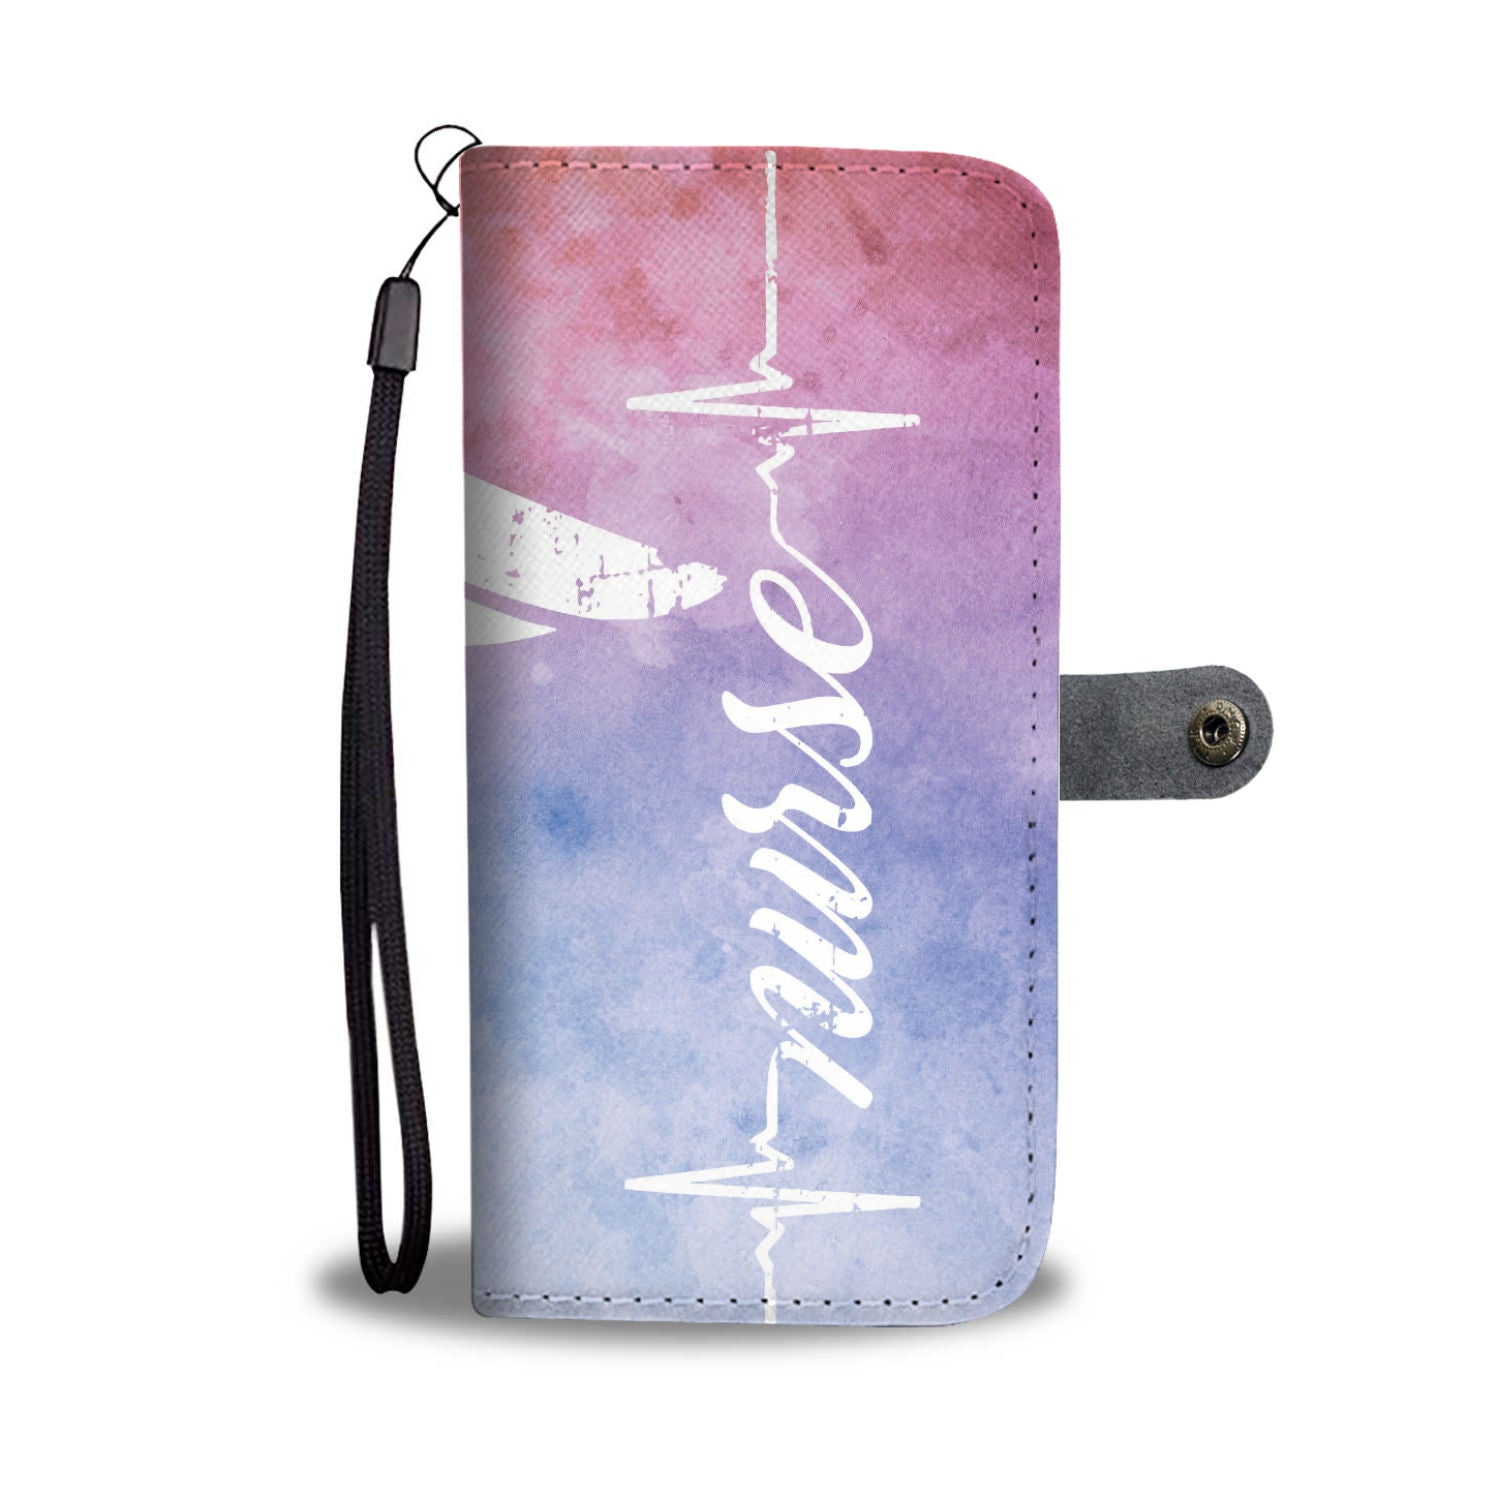 Nurses Heartbeat Phone Wallet Case